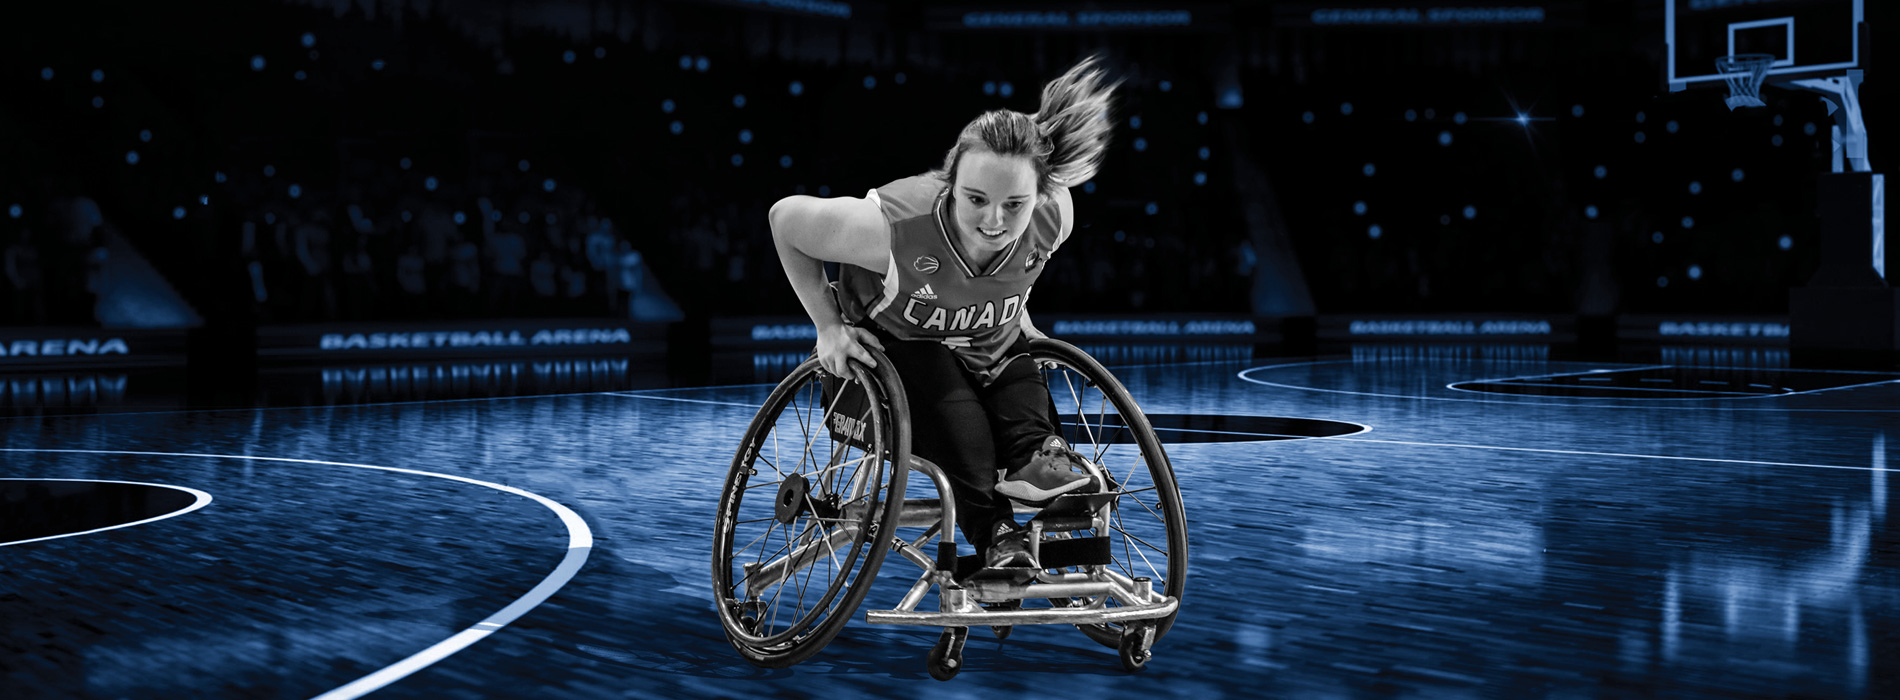 Wheelchair Basketball Athlete Elodie Tessier